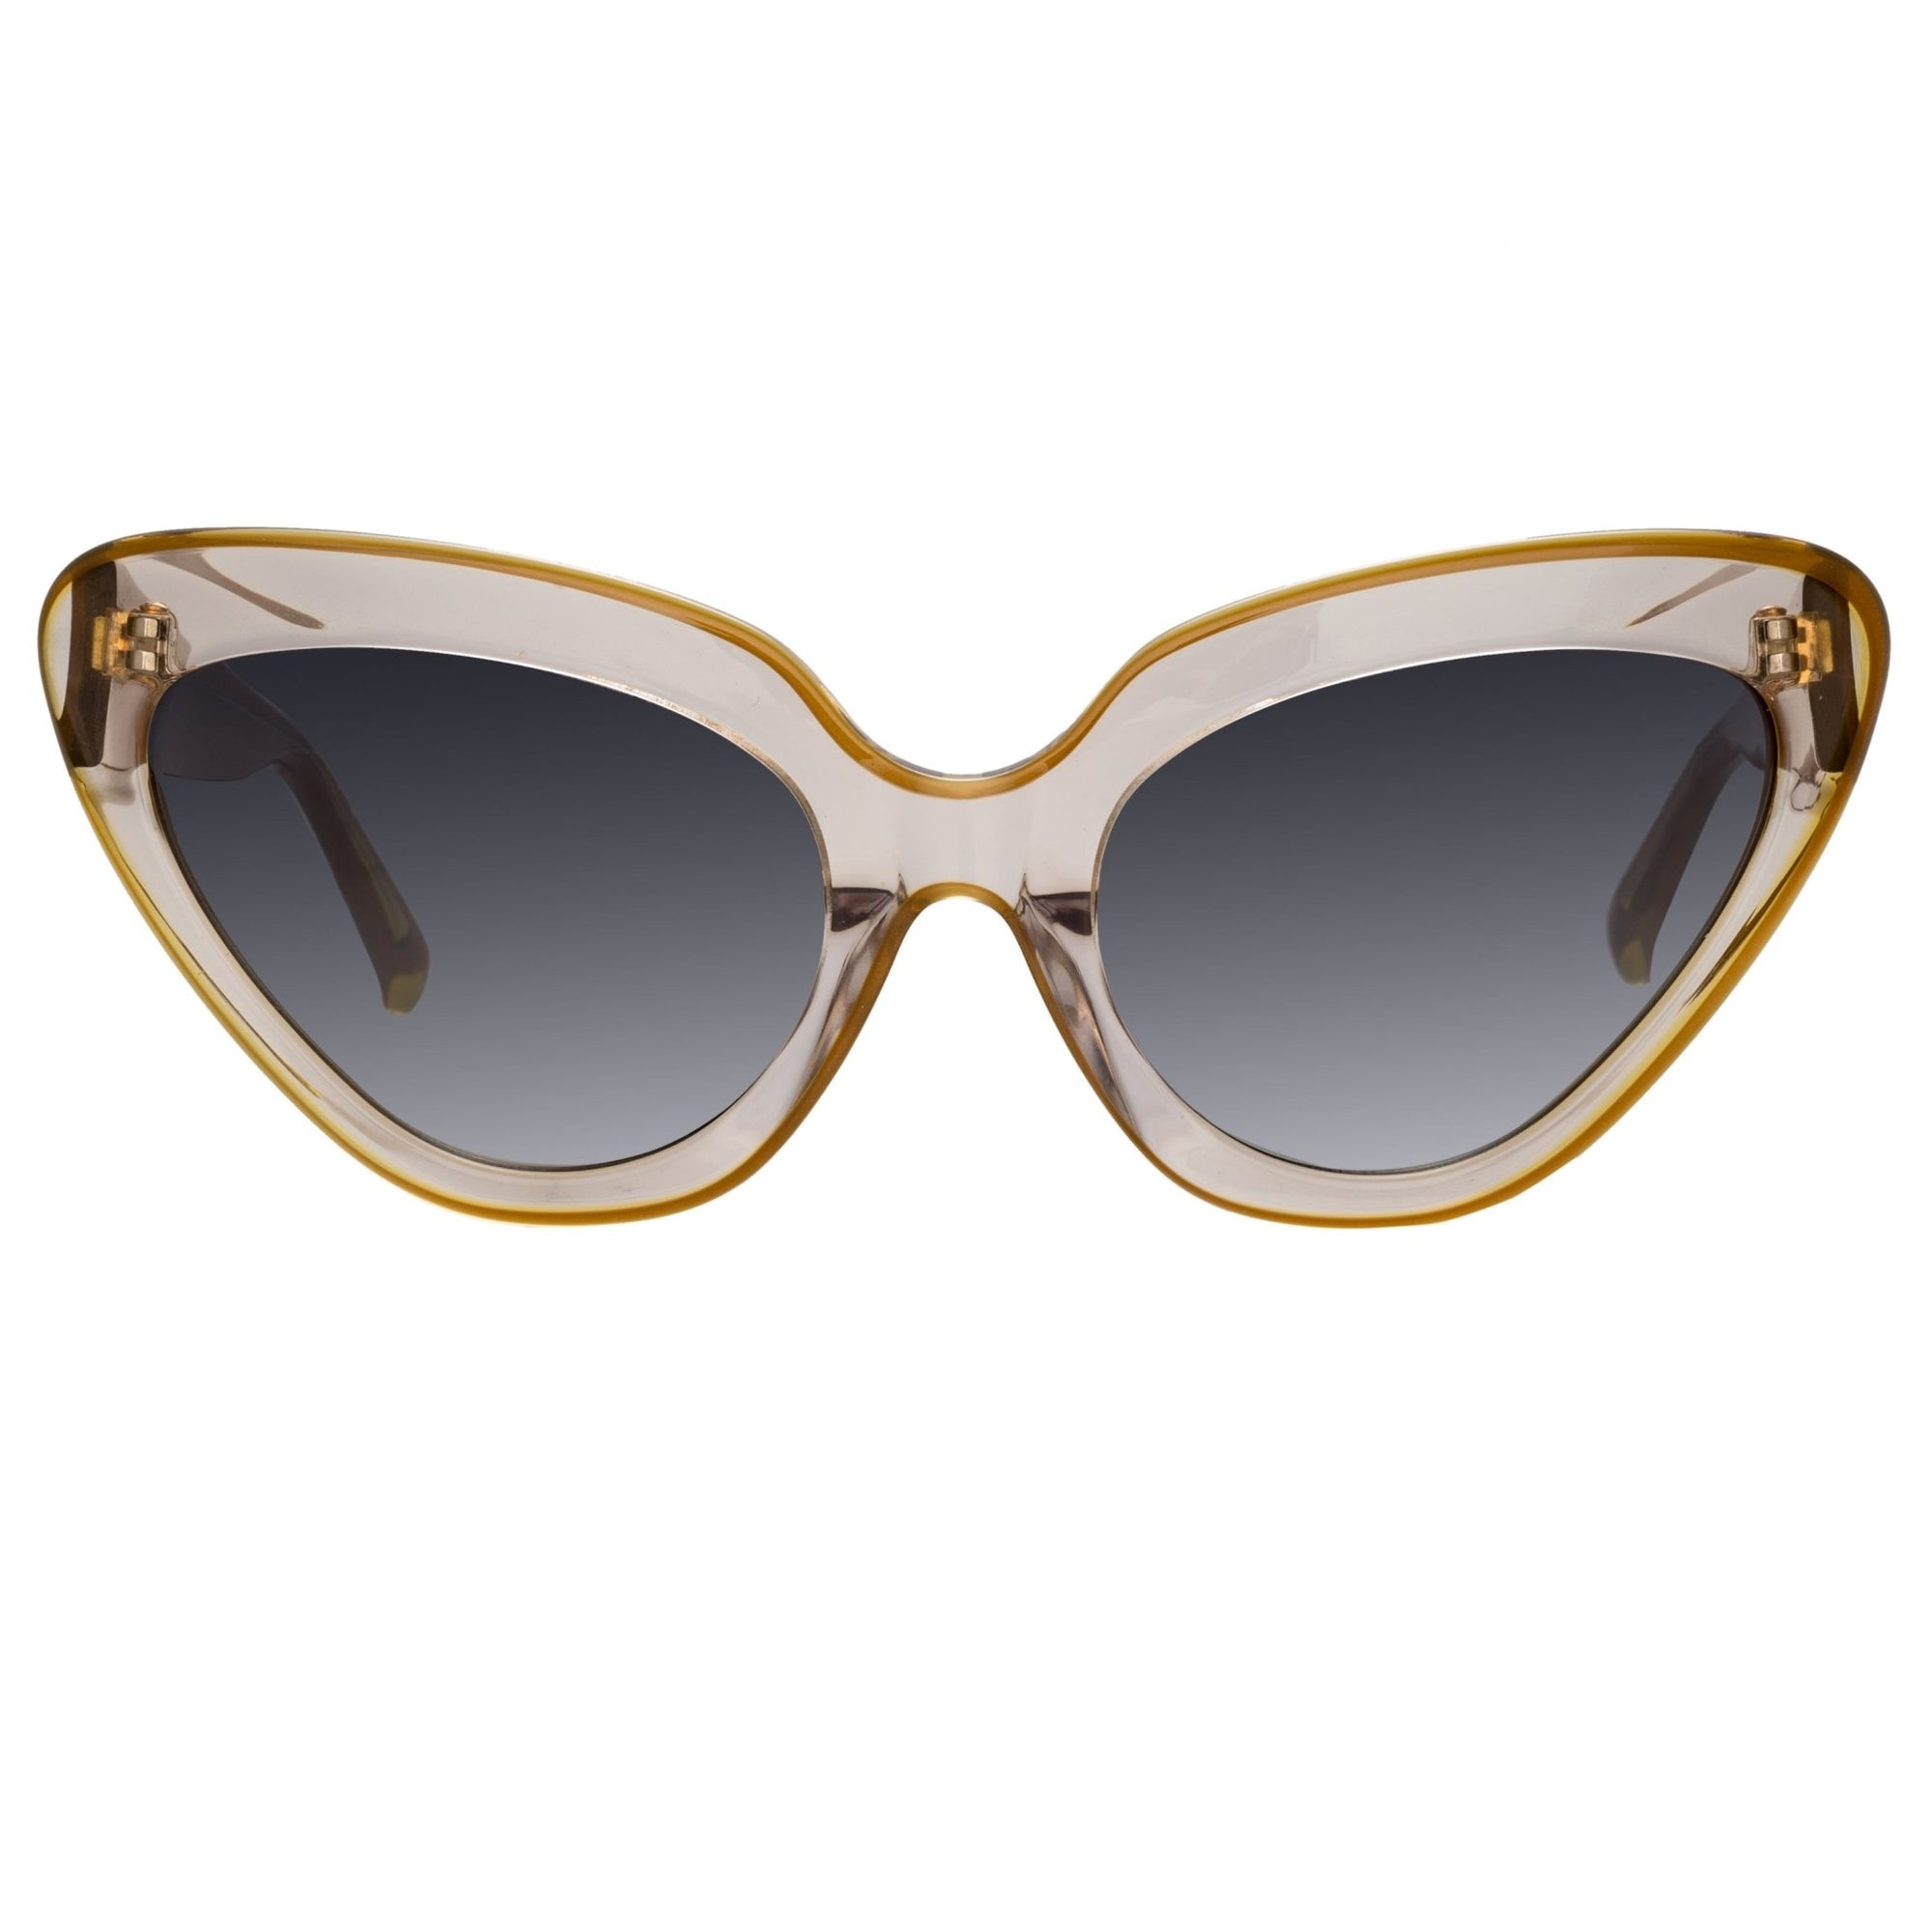 Erdem Women Sunglasses Cat Eye Marmalade with Grey Graduated Lenses EDM29C3SUN - Watches & Crystals